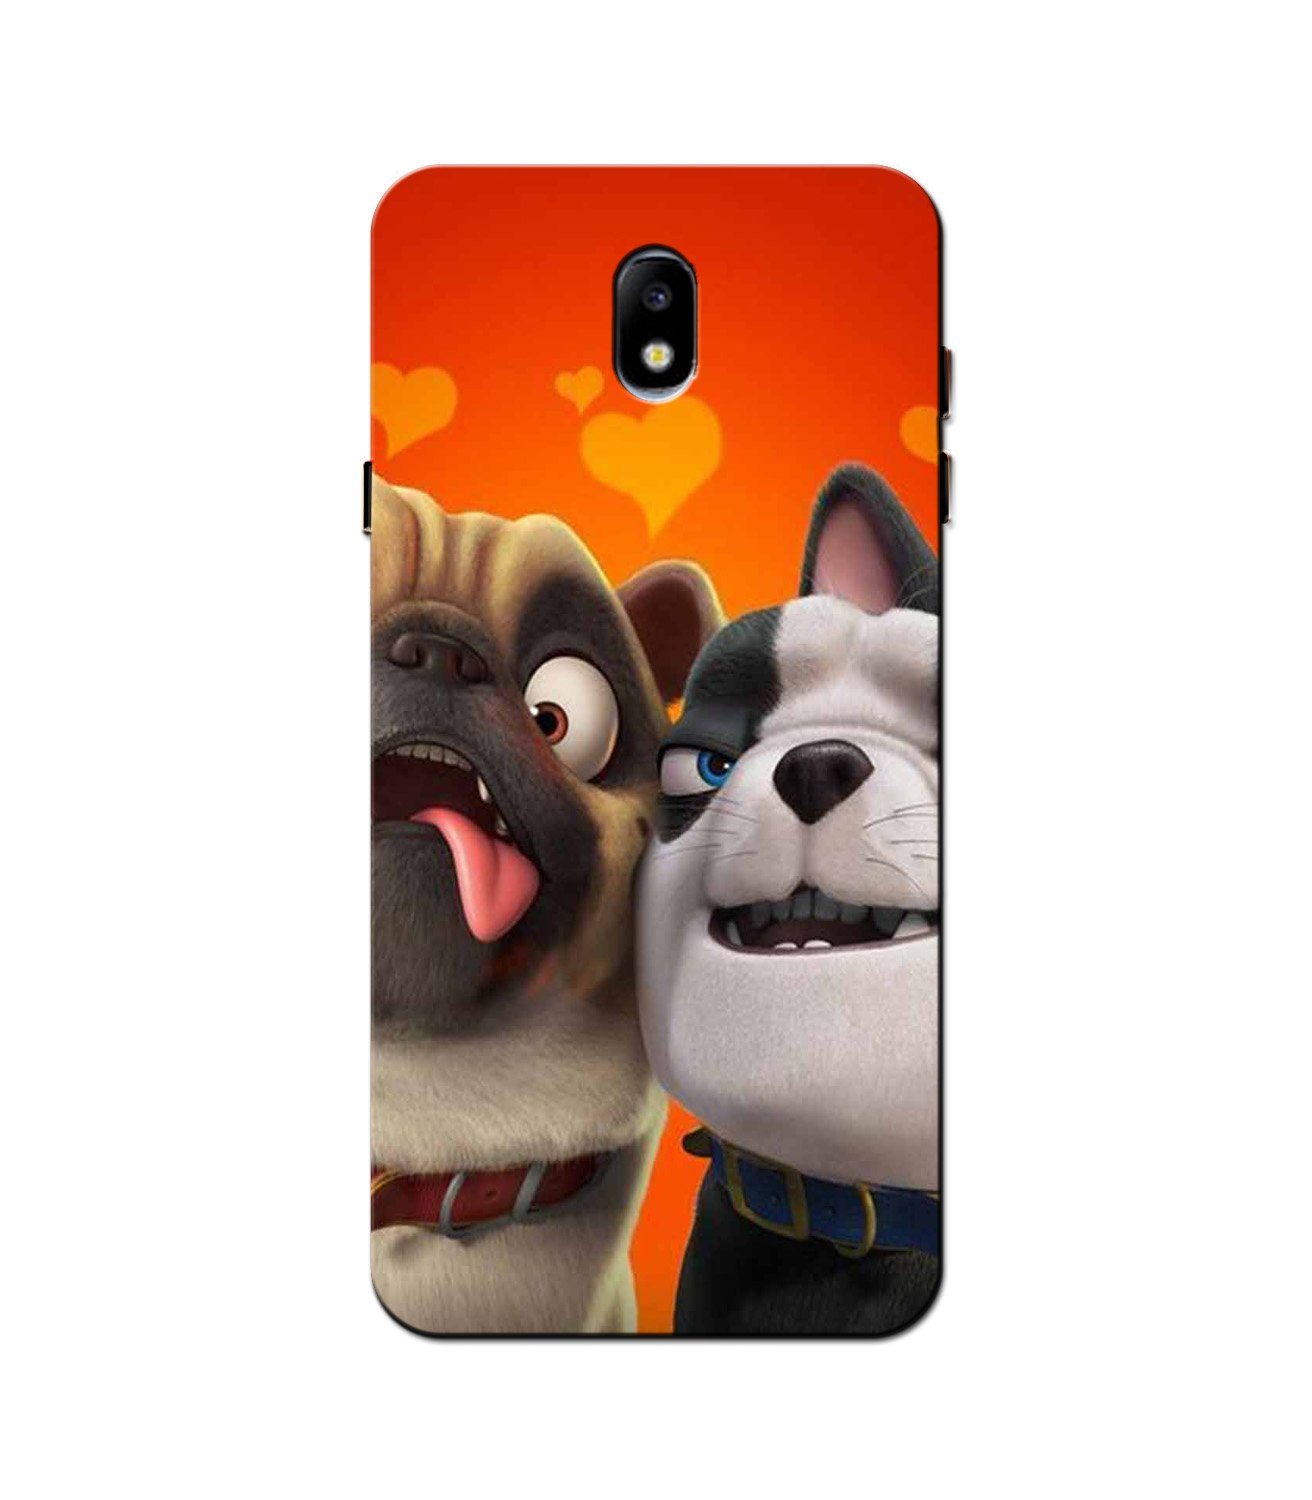 Dog Puppy Mobile Back Case for Galaxy J3 Pro  (Design - 350)